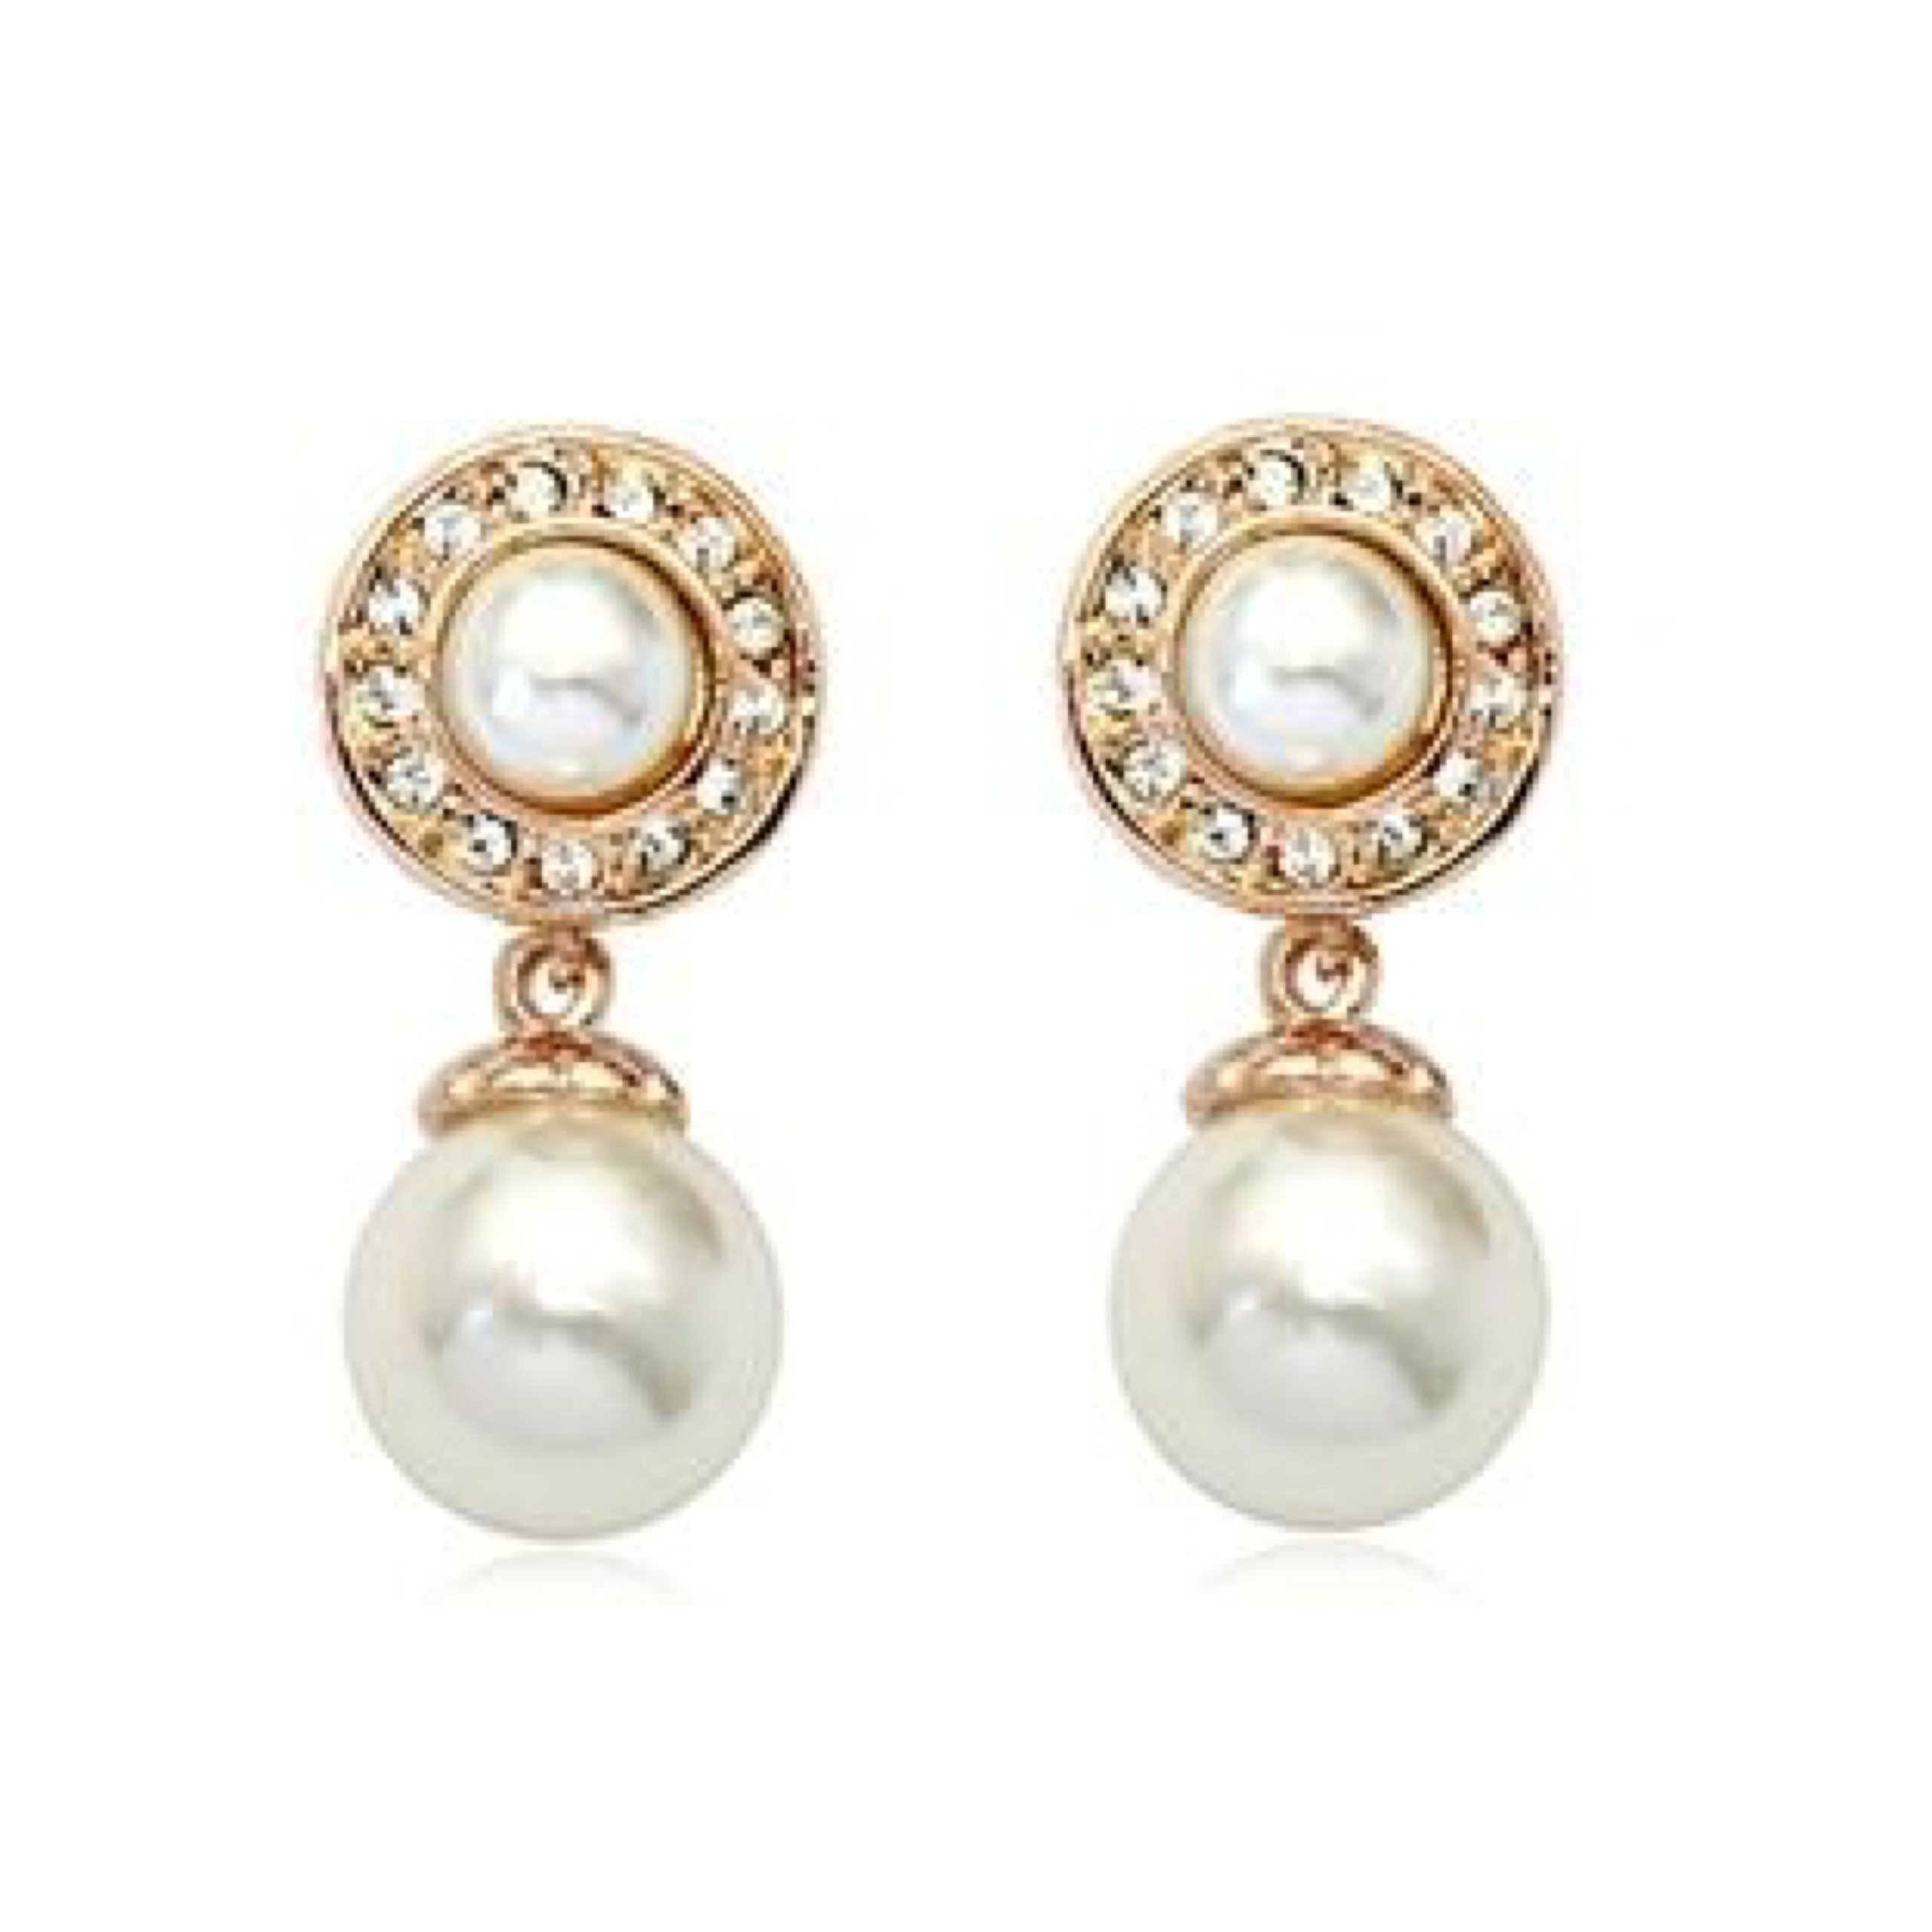 JNA Collection 2018 Mother's Day Love Romantic Gift 18K Gold Plated Austrian Crystal Two White Pearls Bridal Drop Dangle Fashion Stud Earrings for Girfriend Mom Wife Fiancée